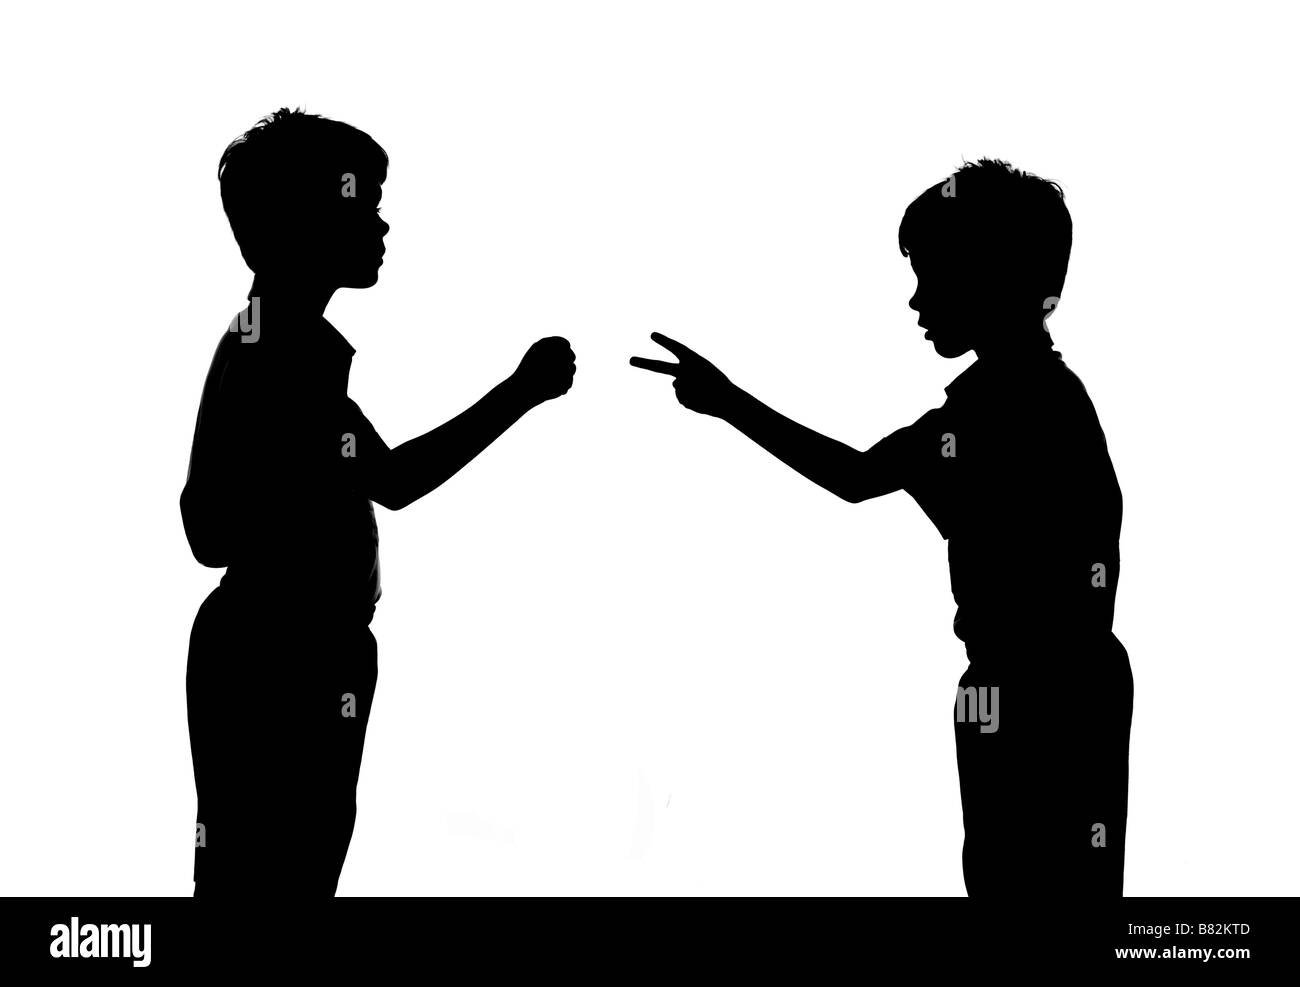 silhouette of two boys play rock scissors paper - Stock Image